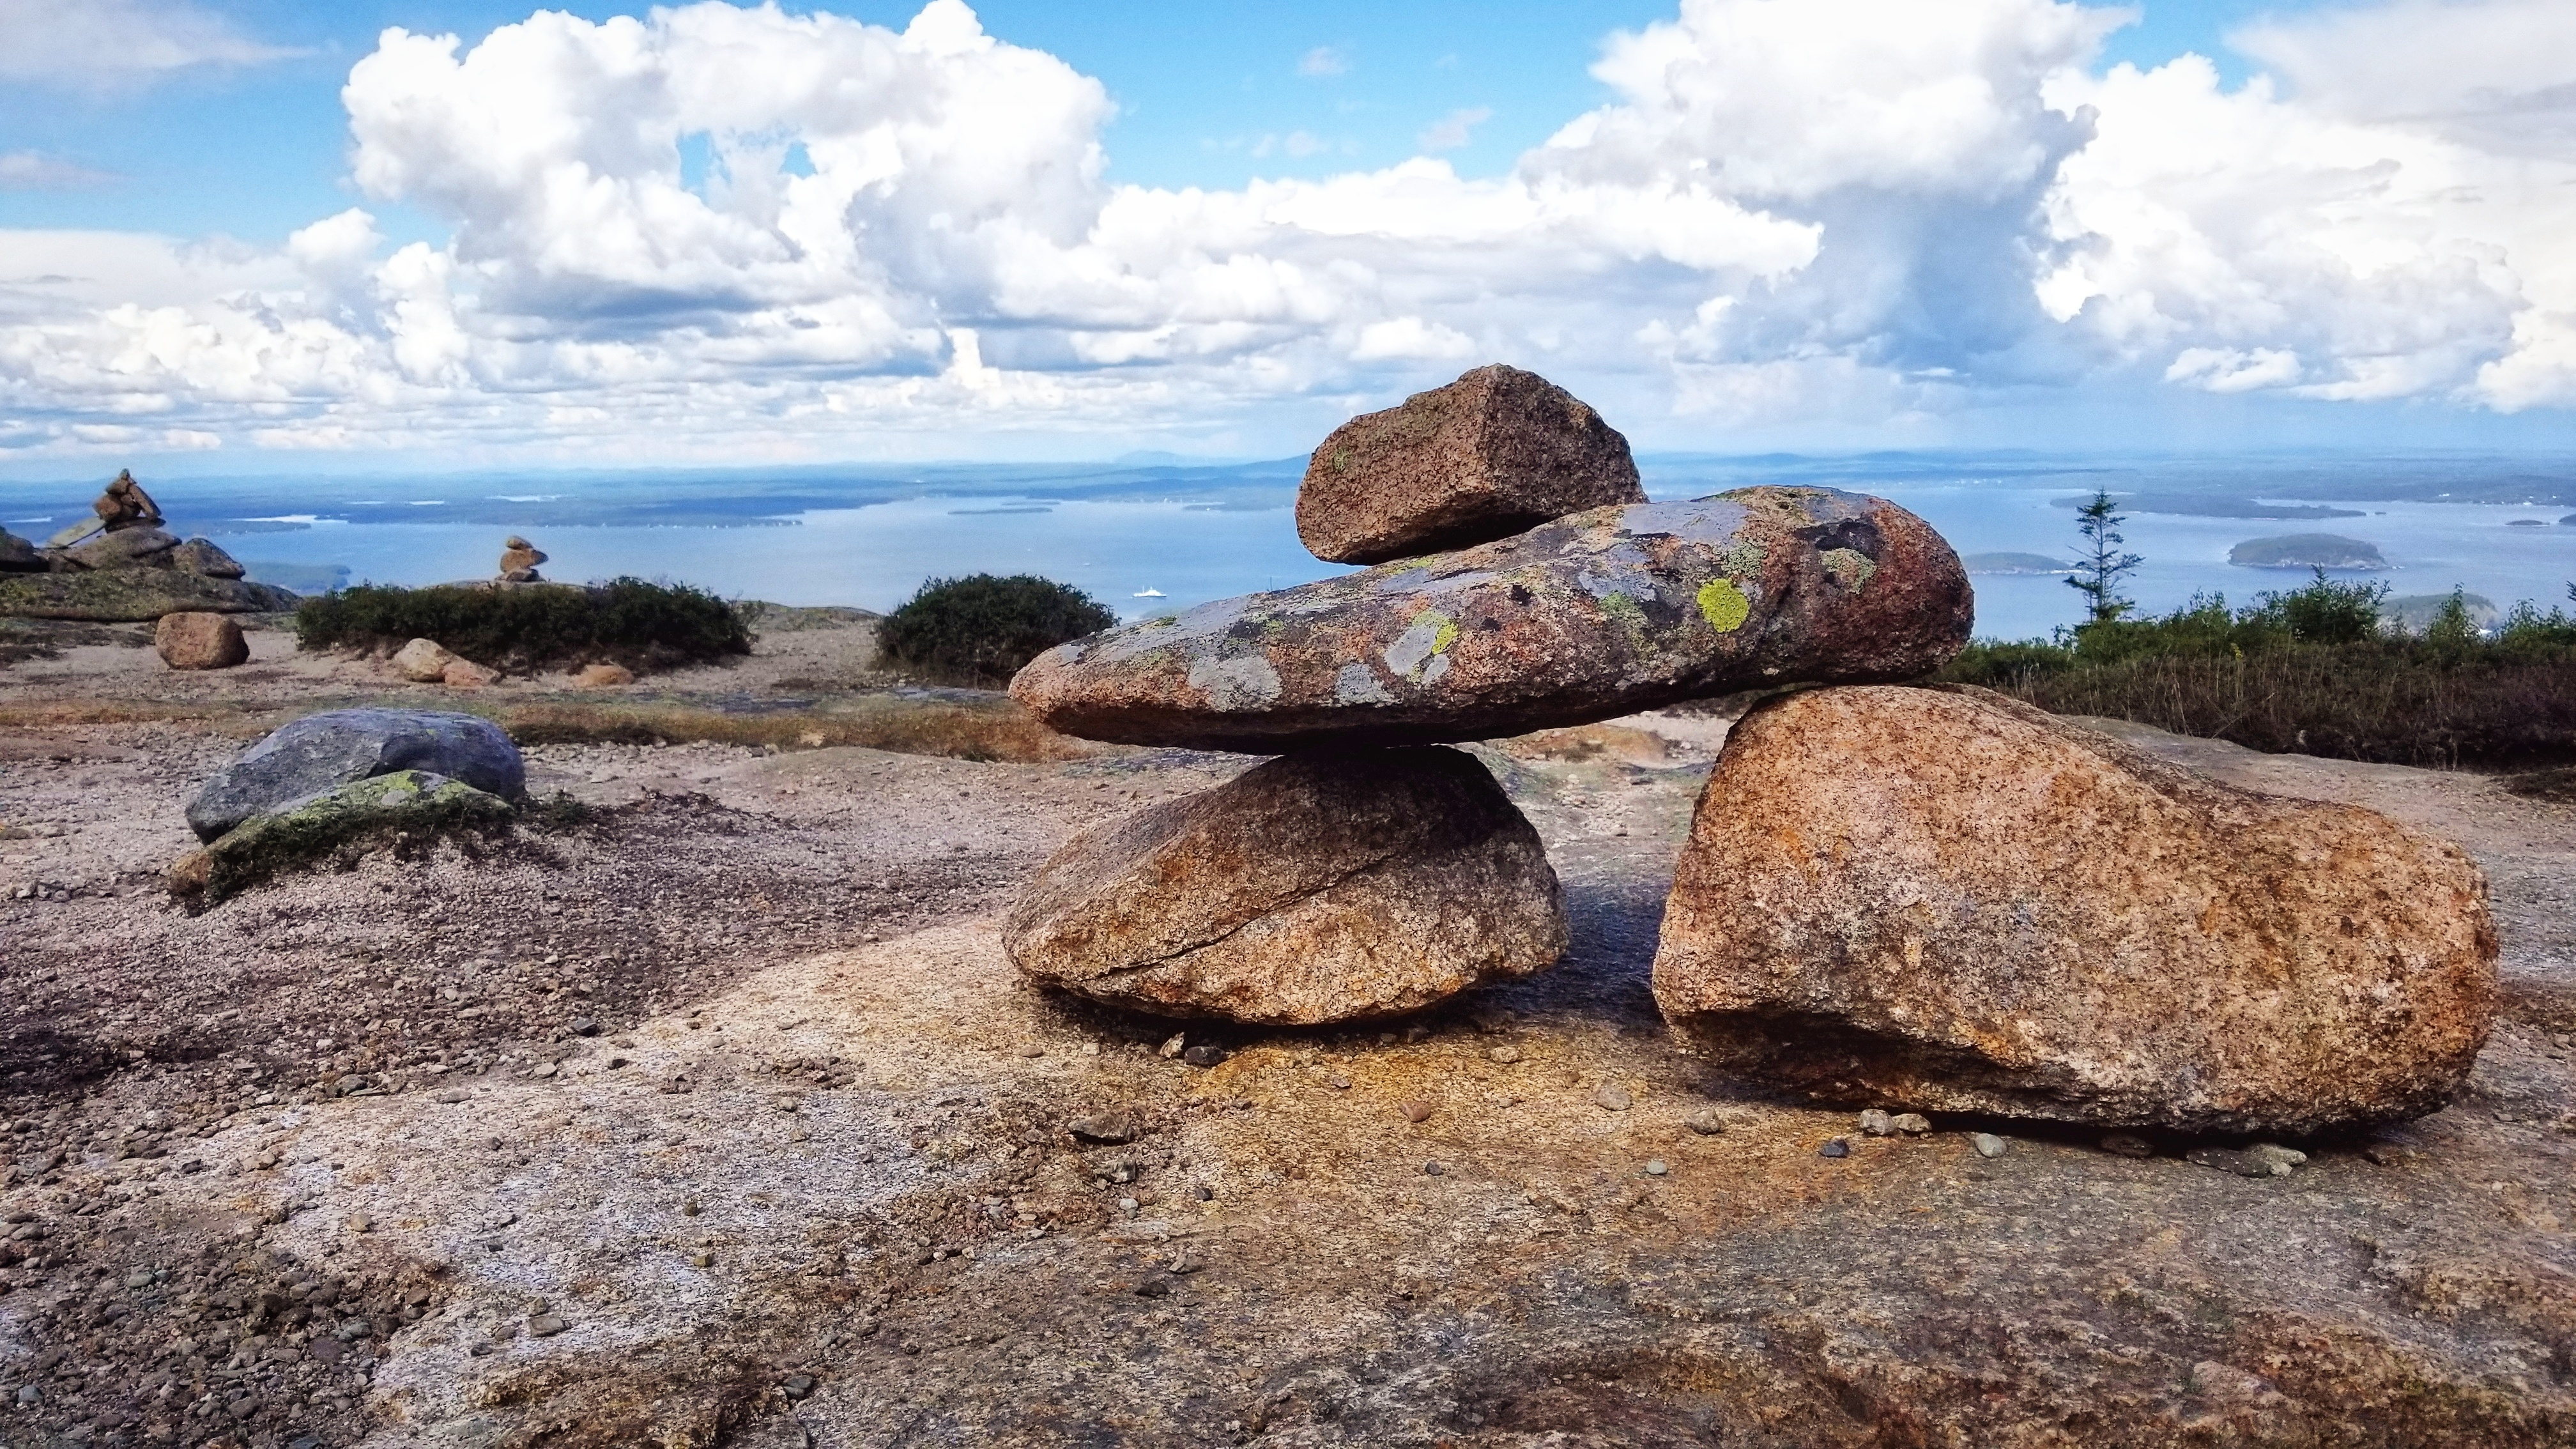 Cairn trail markers